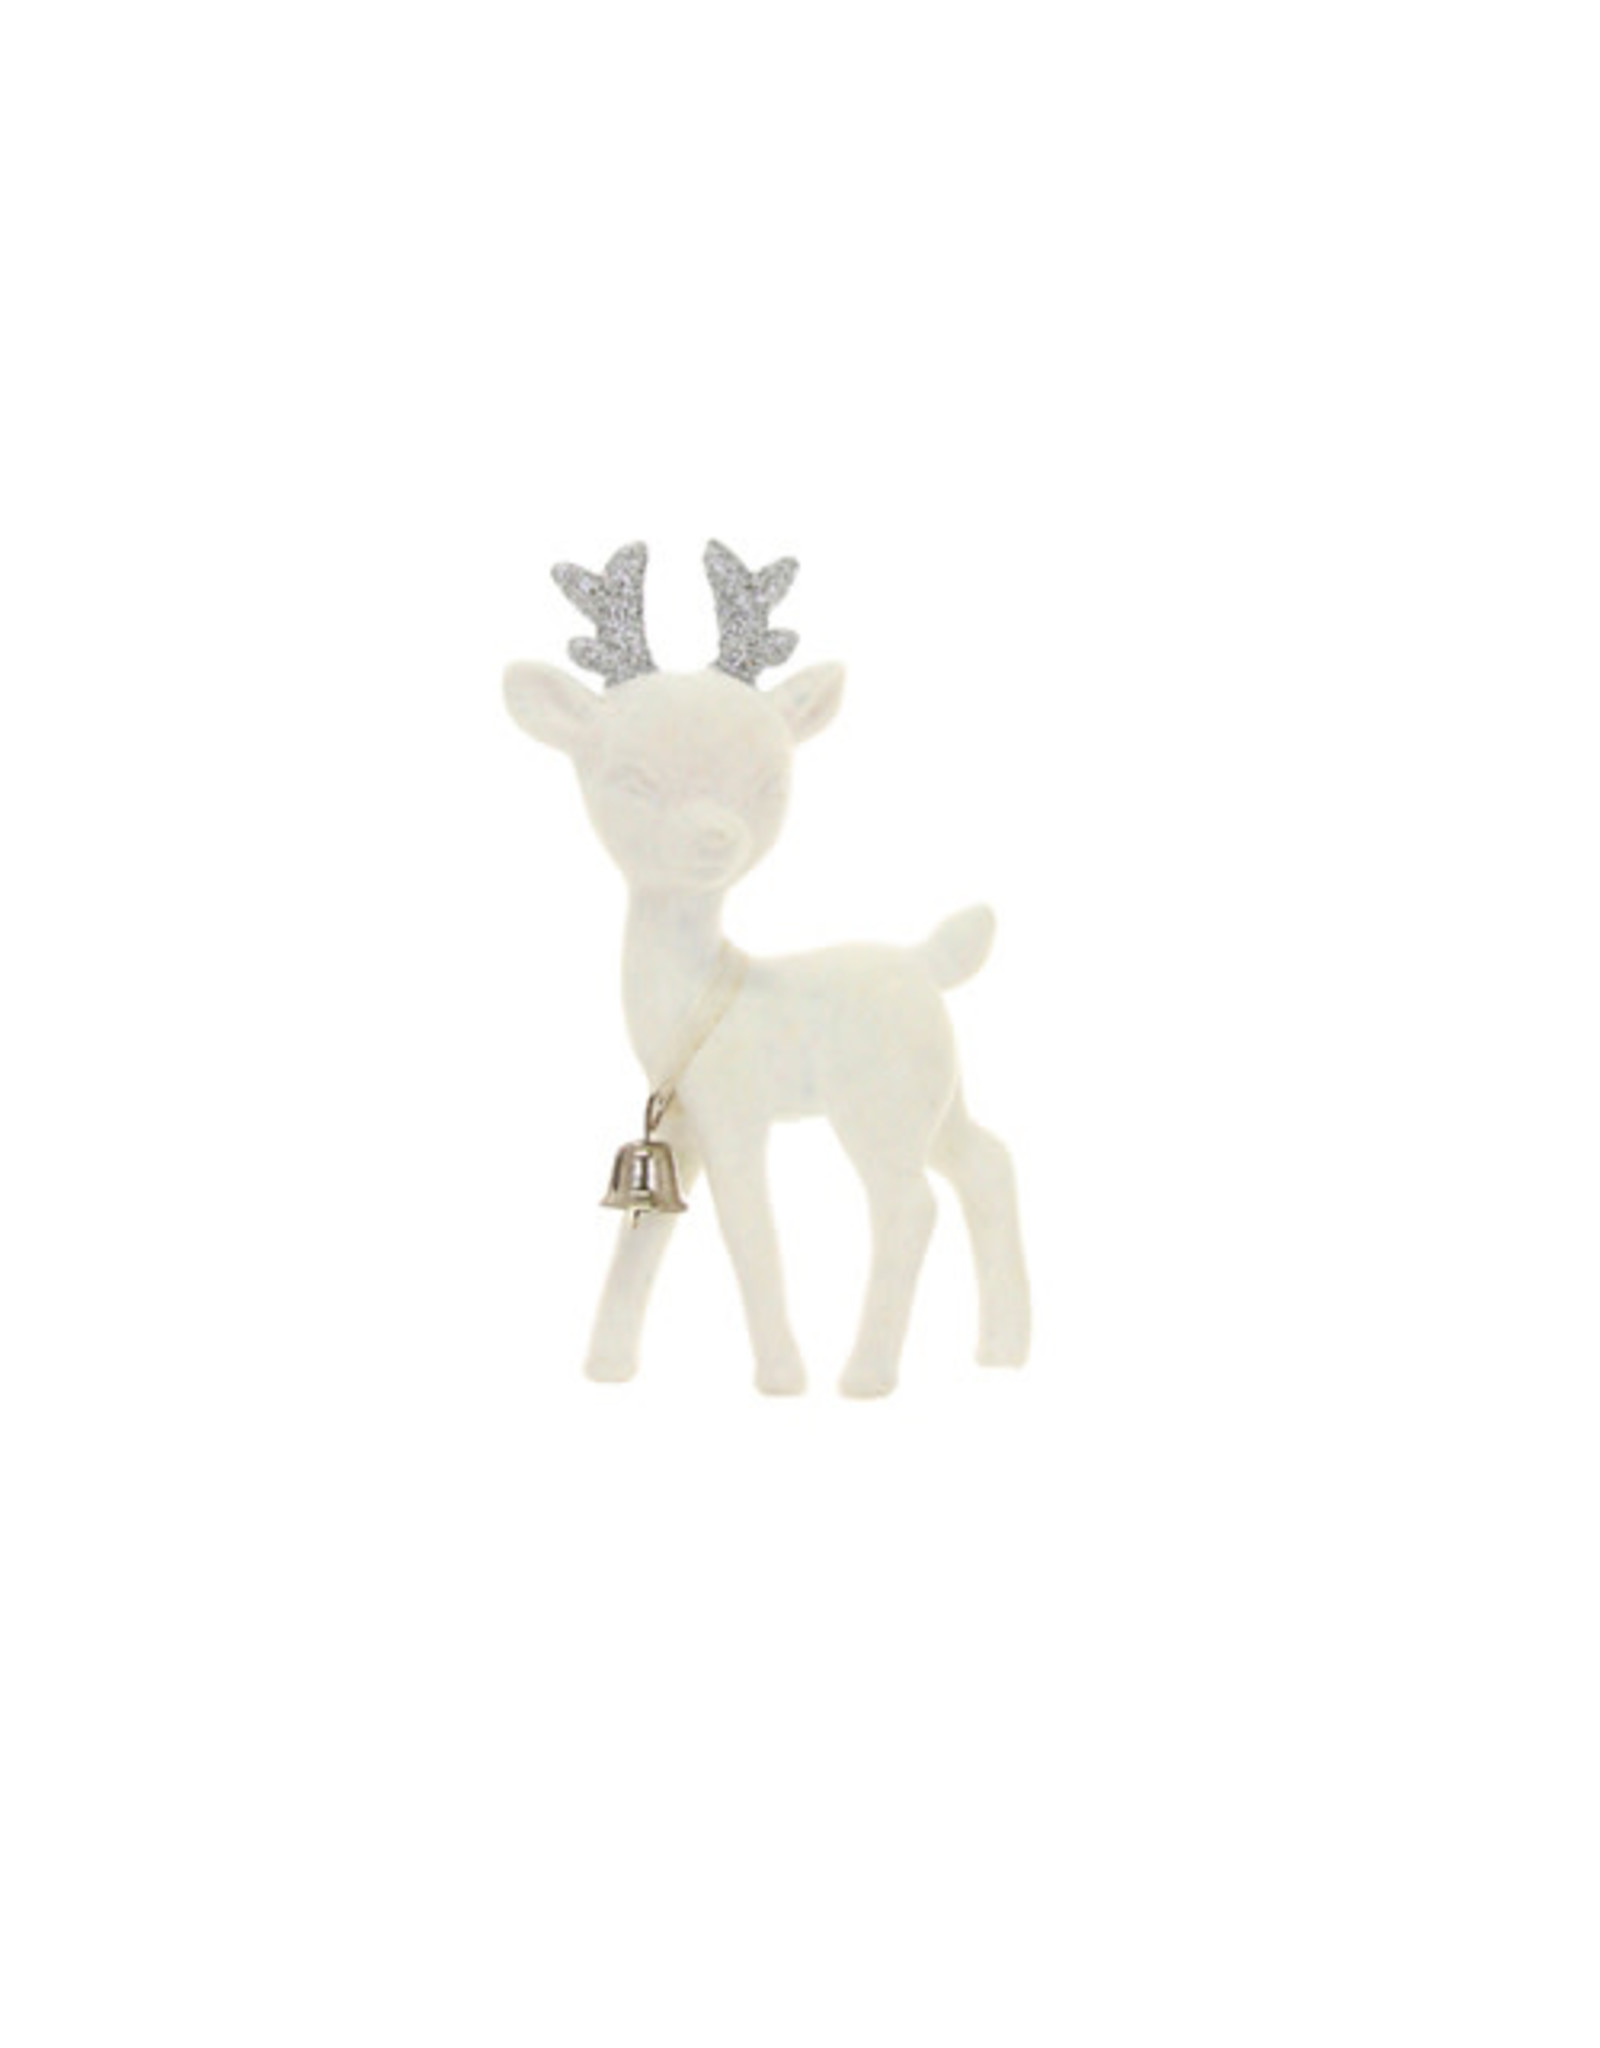 Cody Foster & Co. KITSCH DEER ORNAMENT - IVORY